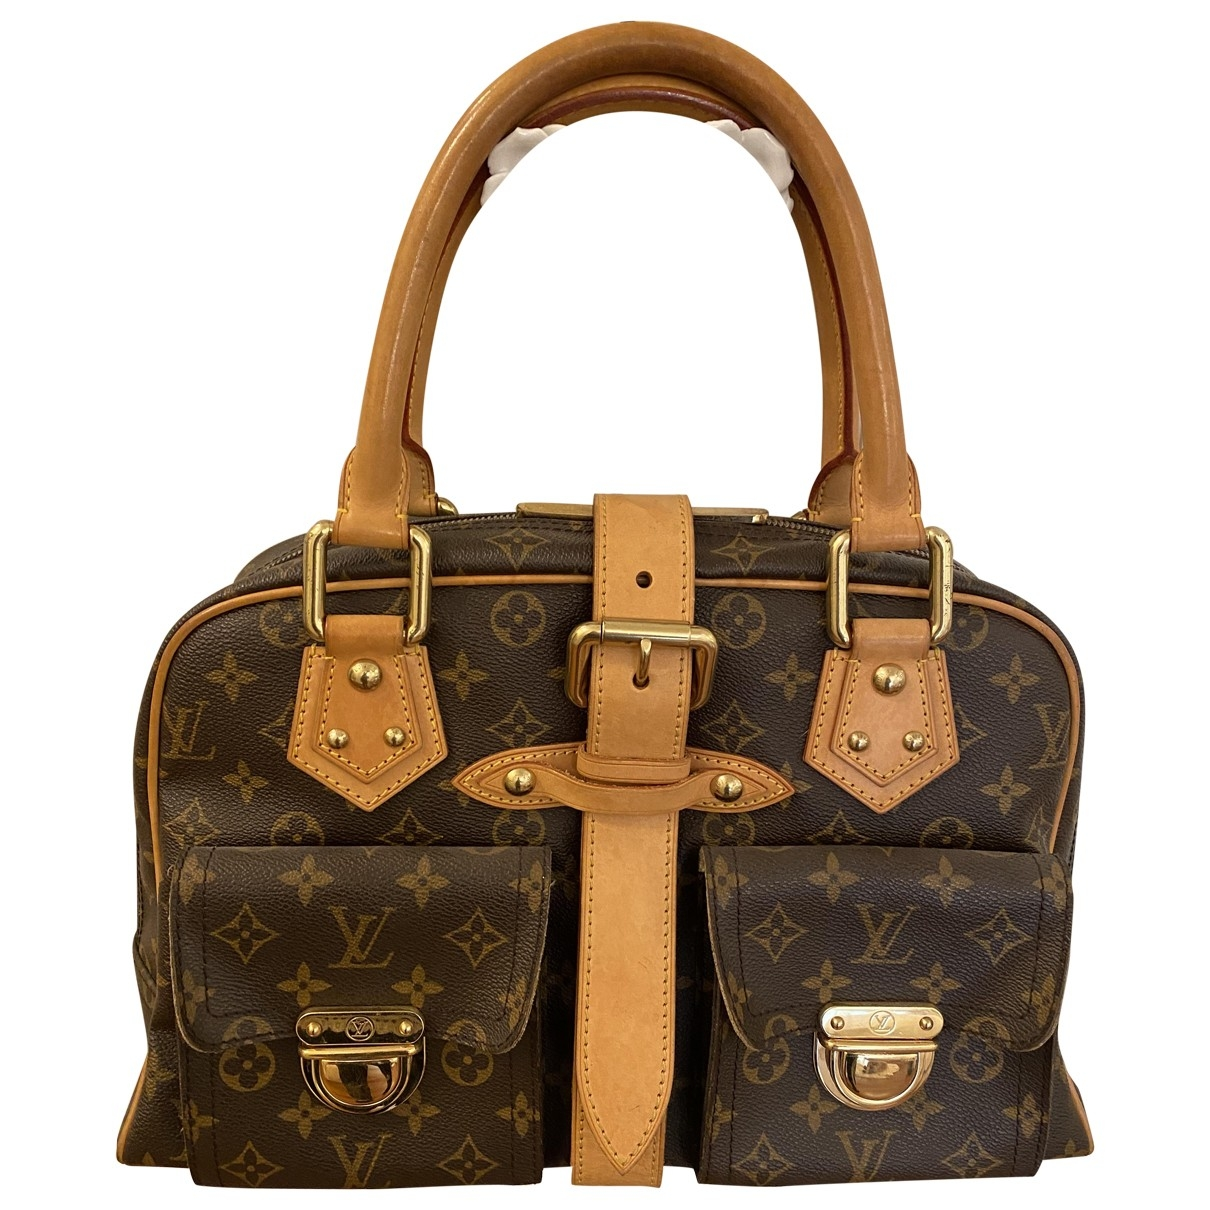 Louis Vuitton Manhattan Handtasche in  Braun Leinen